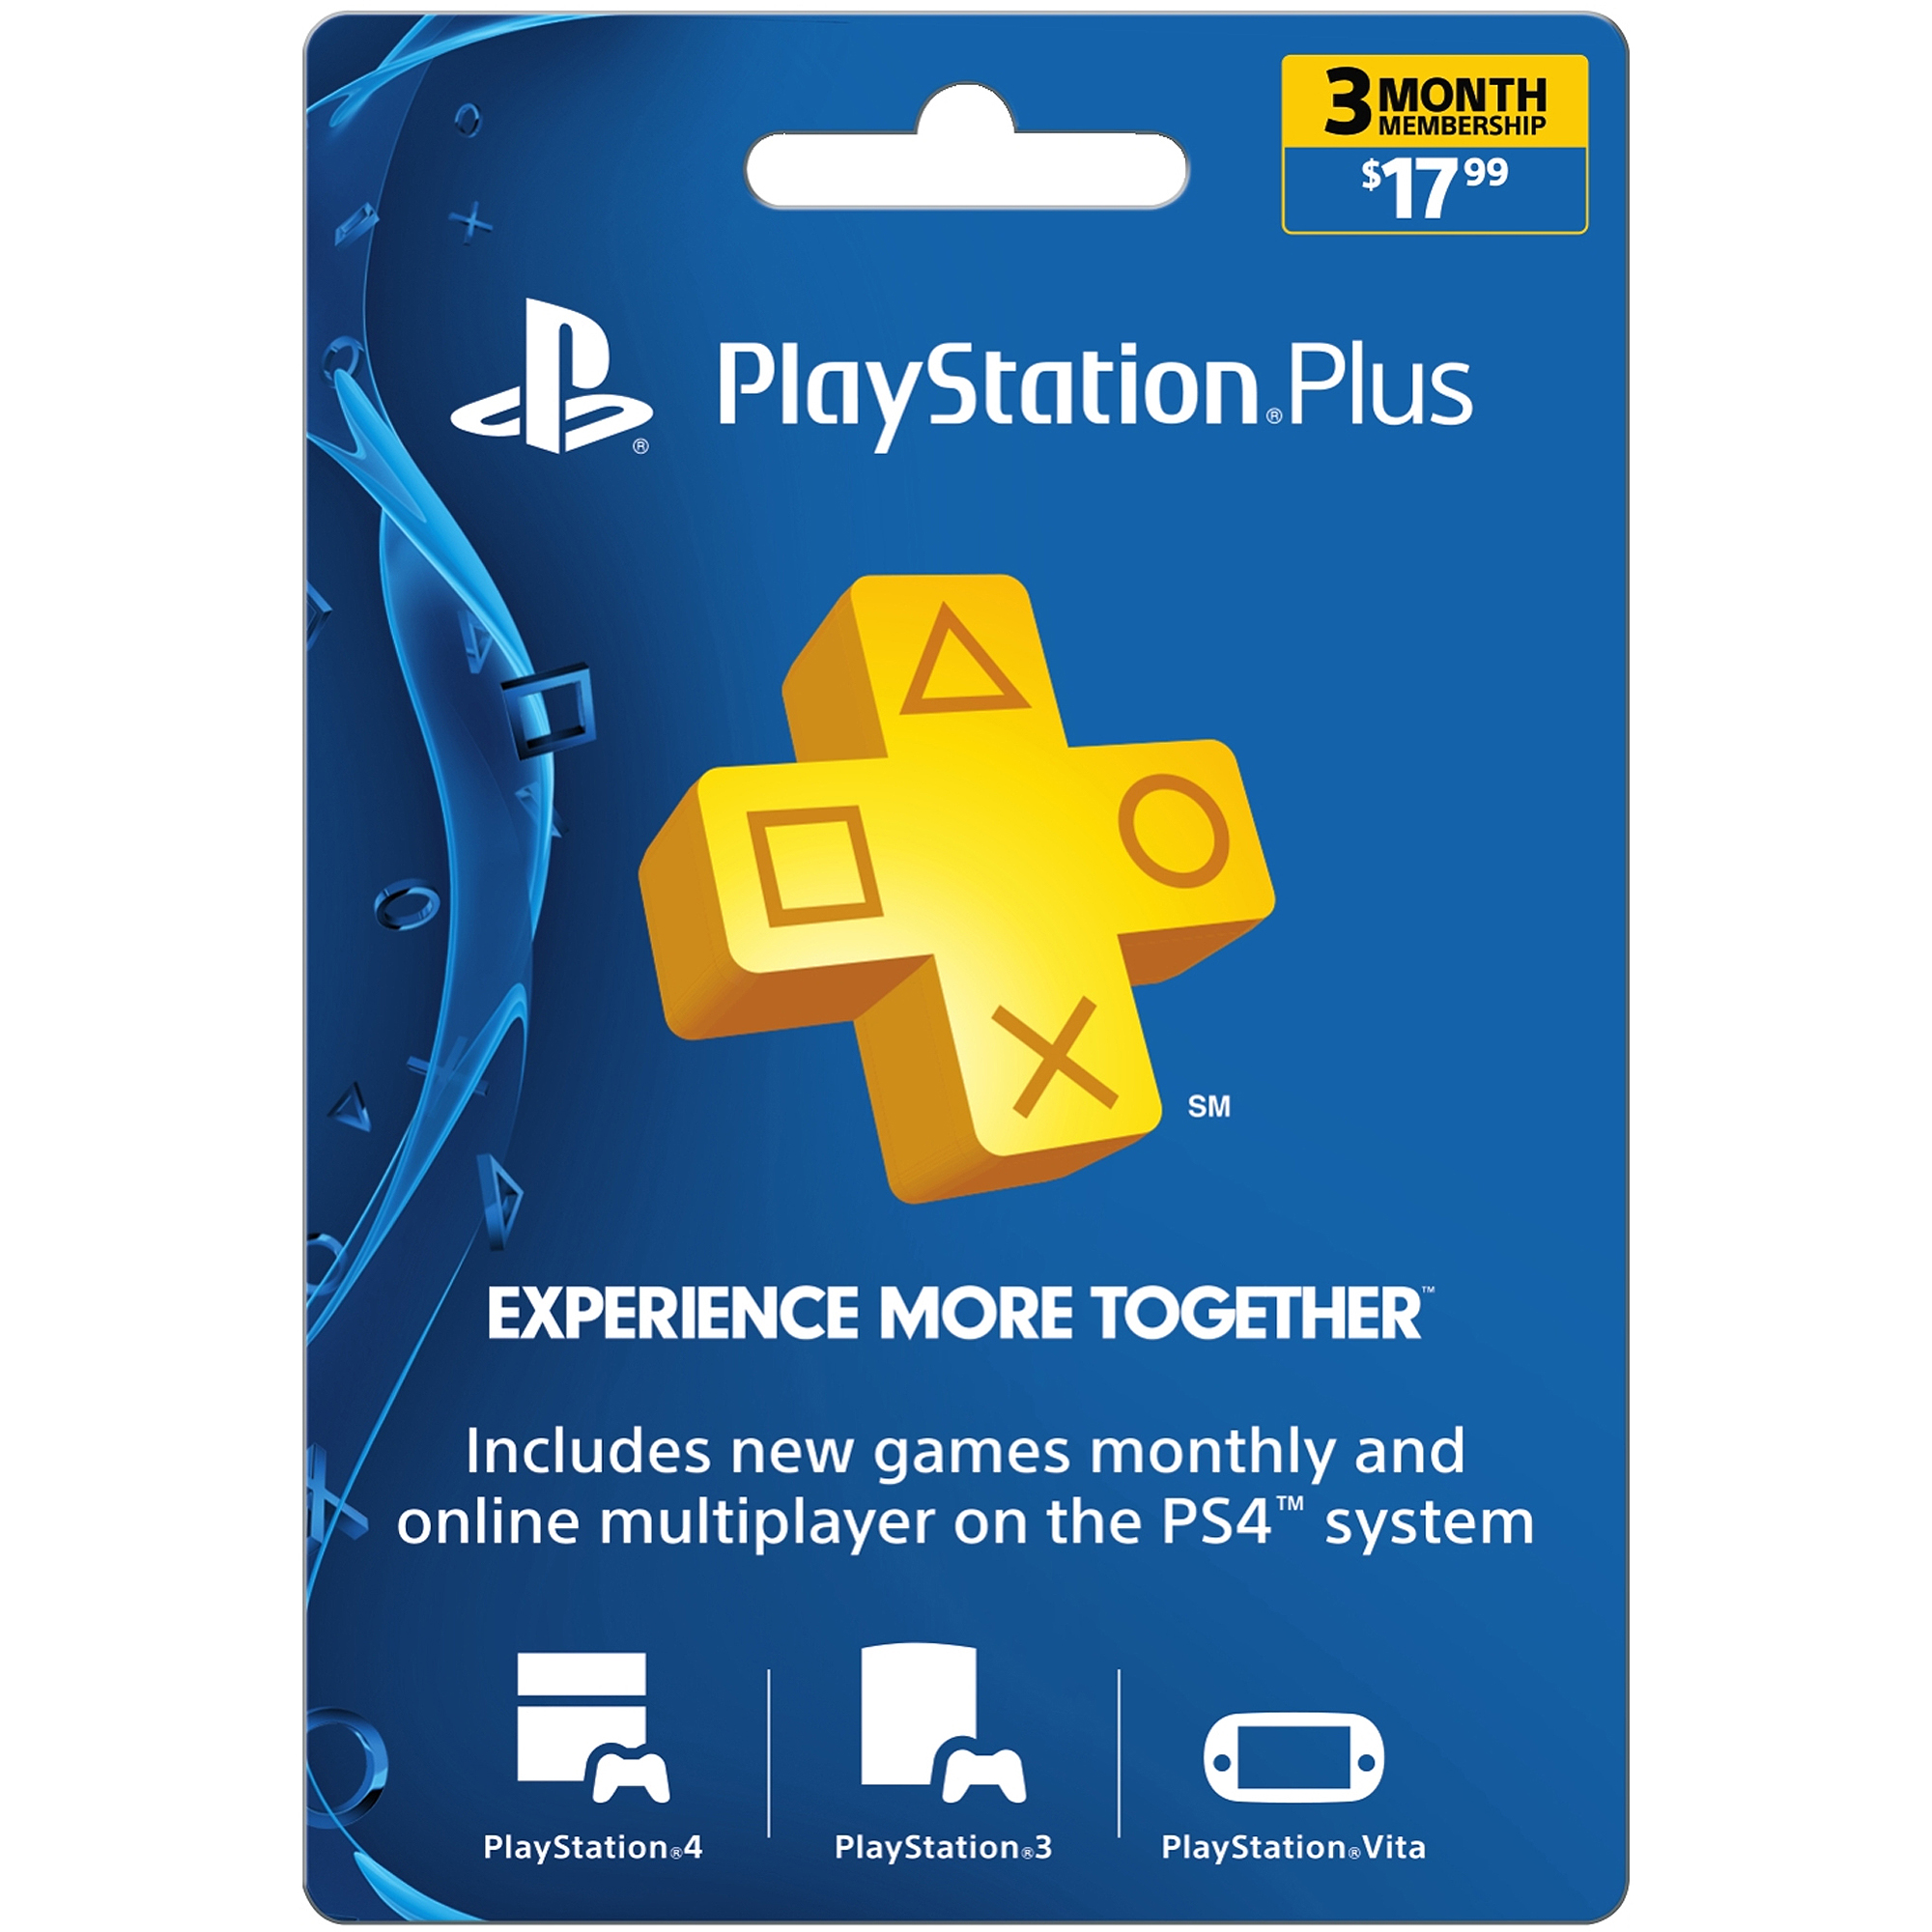 Sony PlayStation Plus 3 Month $17.99